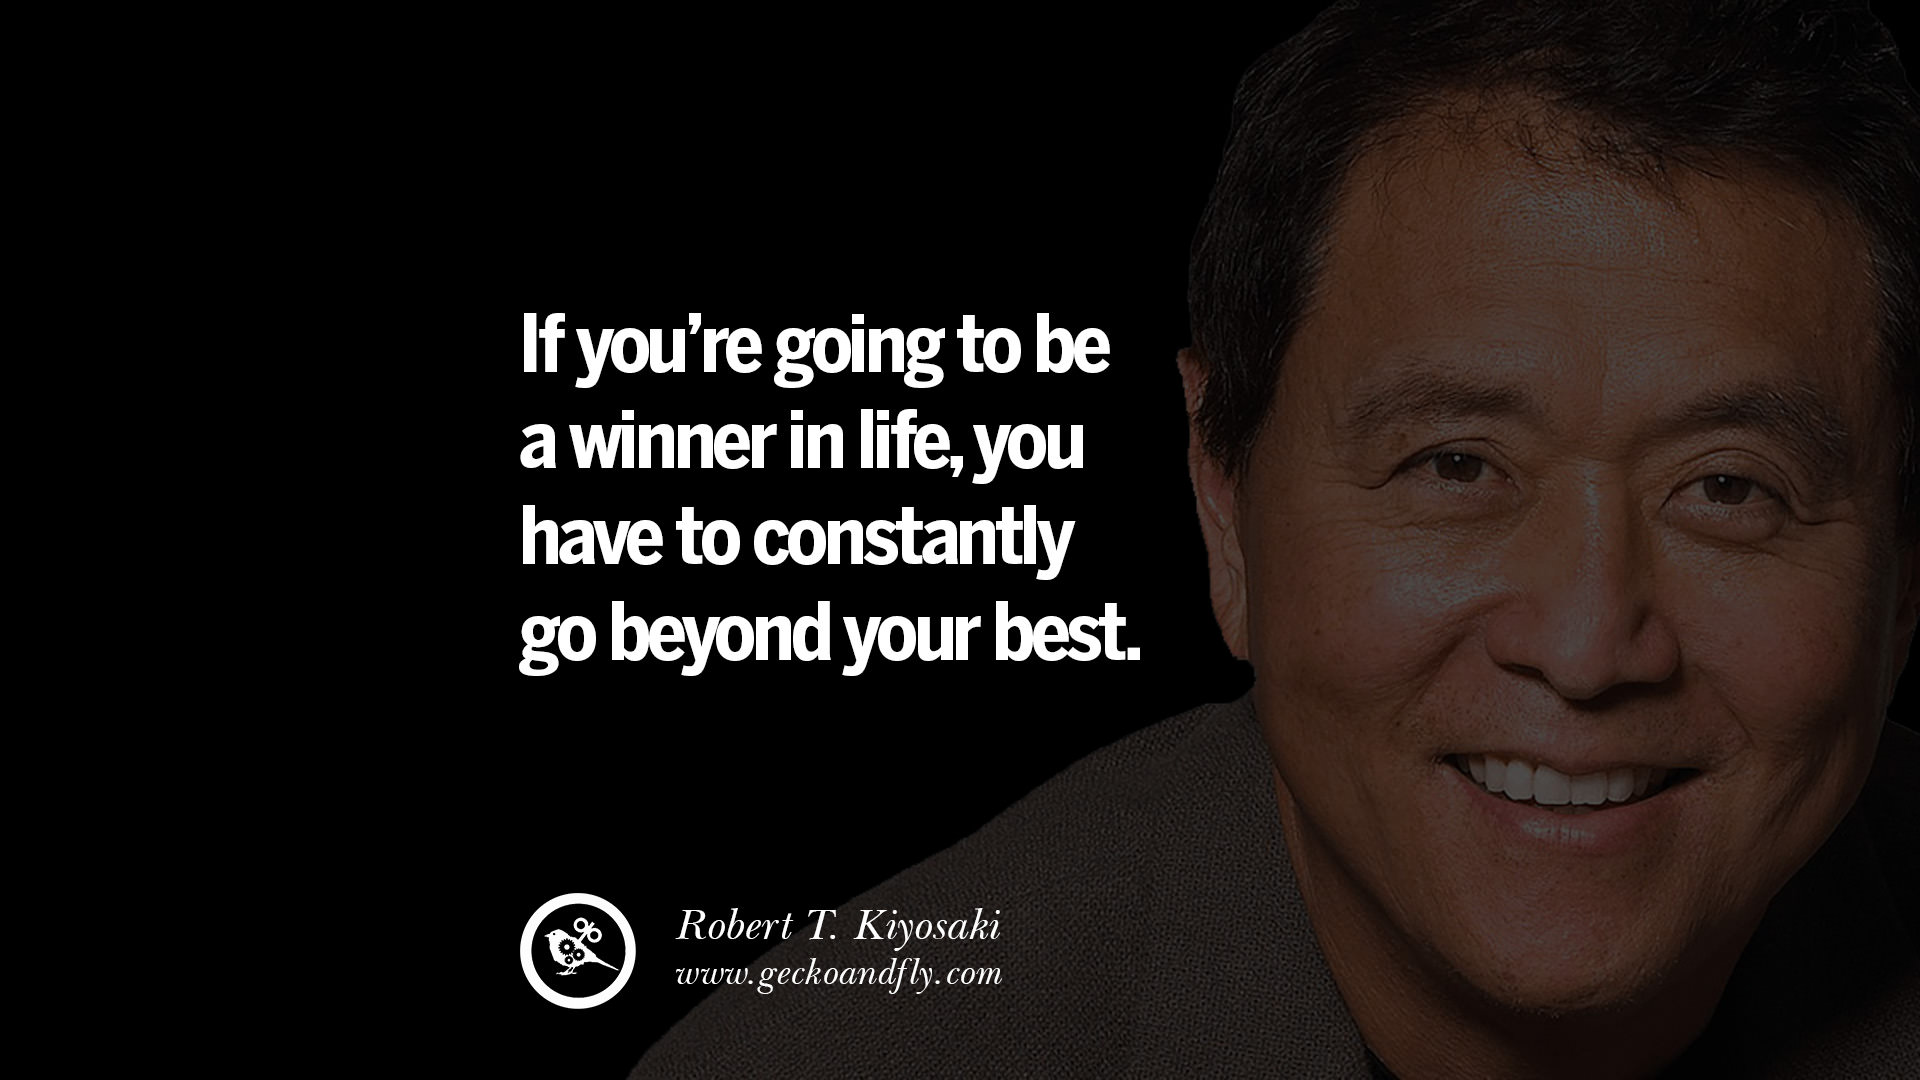 60 Motivational Robert T Kiyosaki Quotes For Selling Amway Nutrilite And Herbalife Shakes